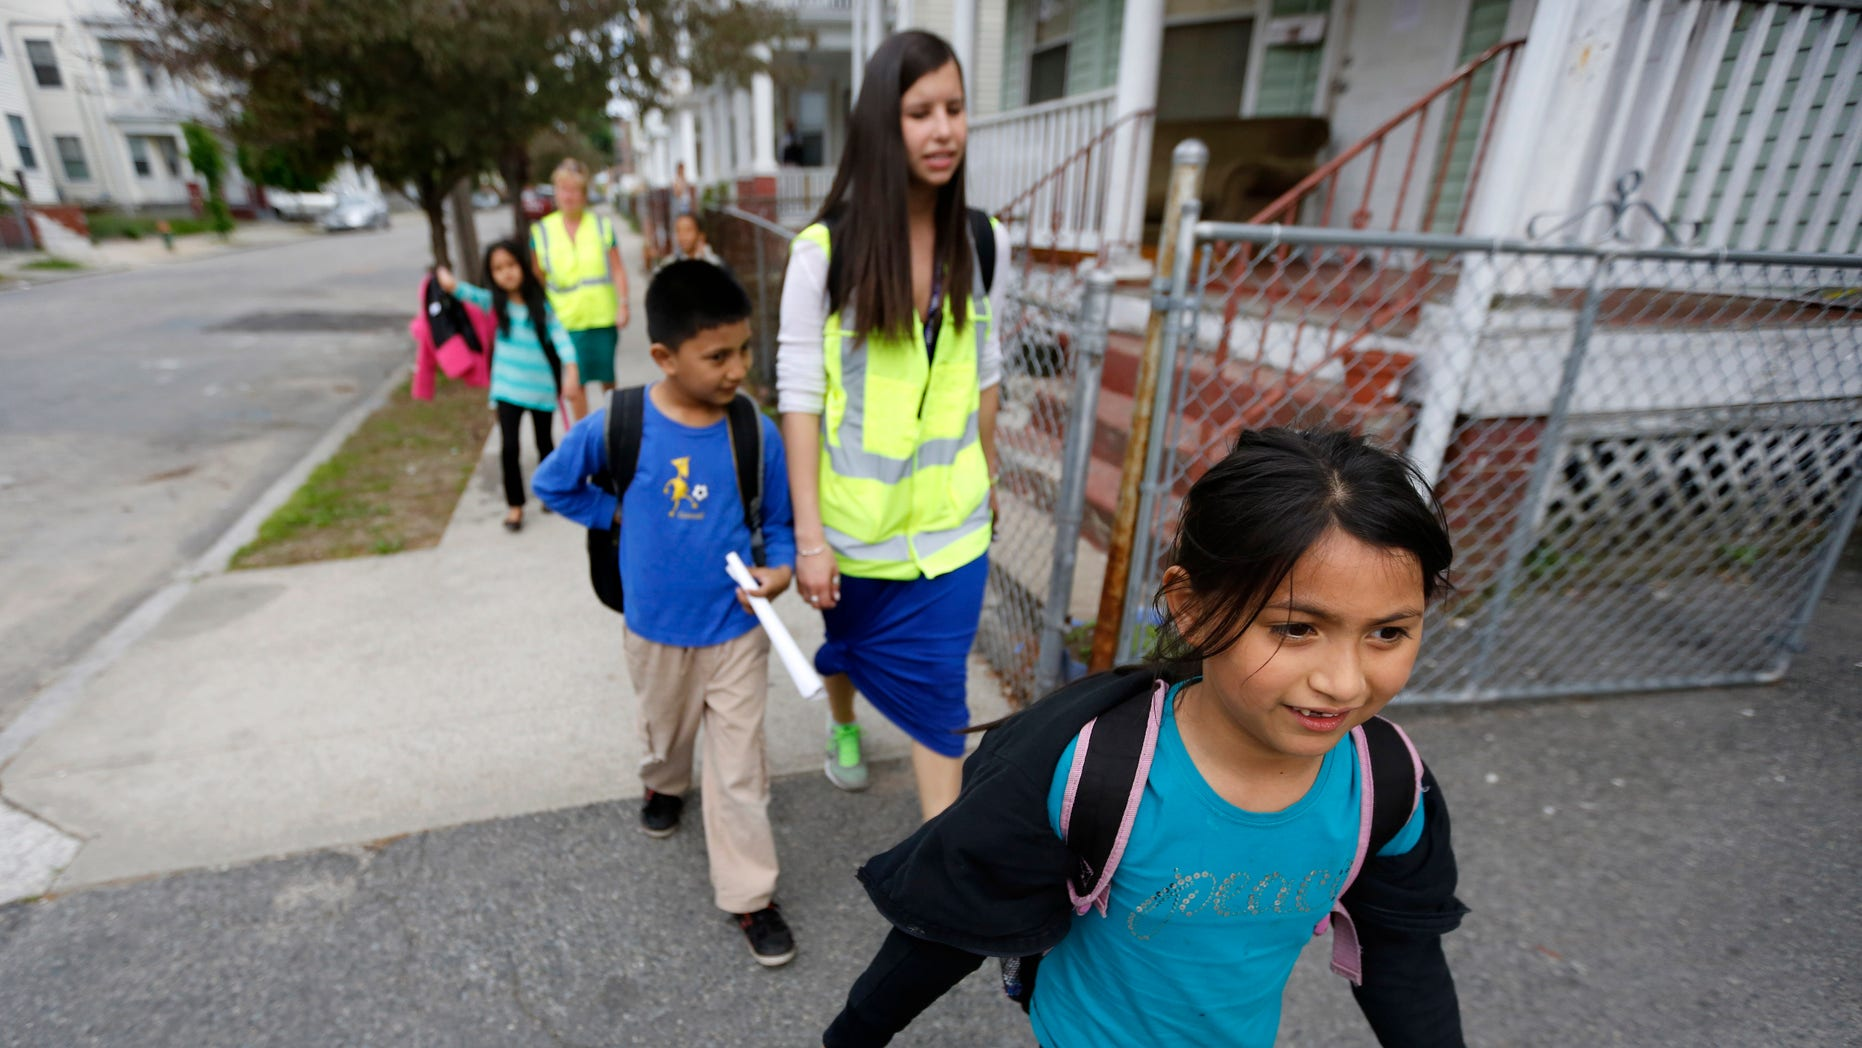 Divya Dahal, 8, walks home from school with a group of grade school children escorted by Allyson Trenteseaux, a Walking School Bus program manager, center right, in Providence, R.I. (AP Photo/Steven Senne)